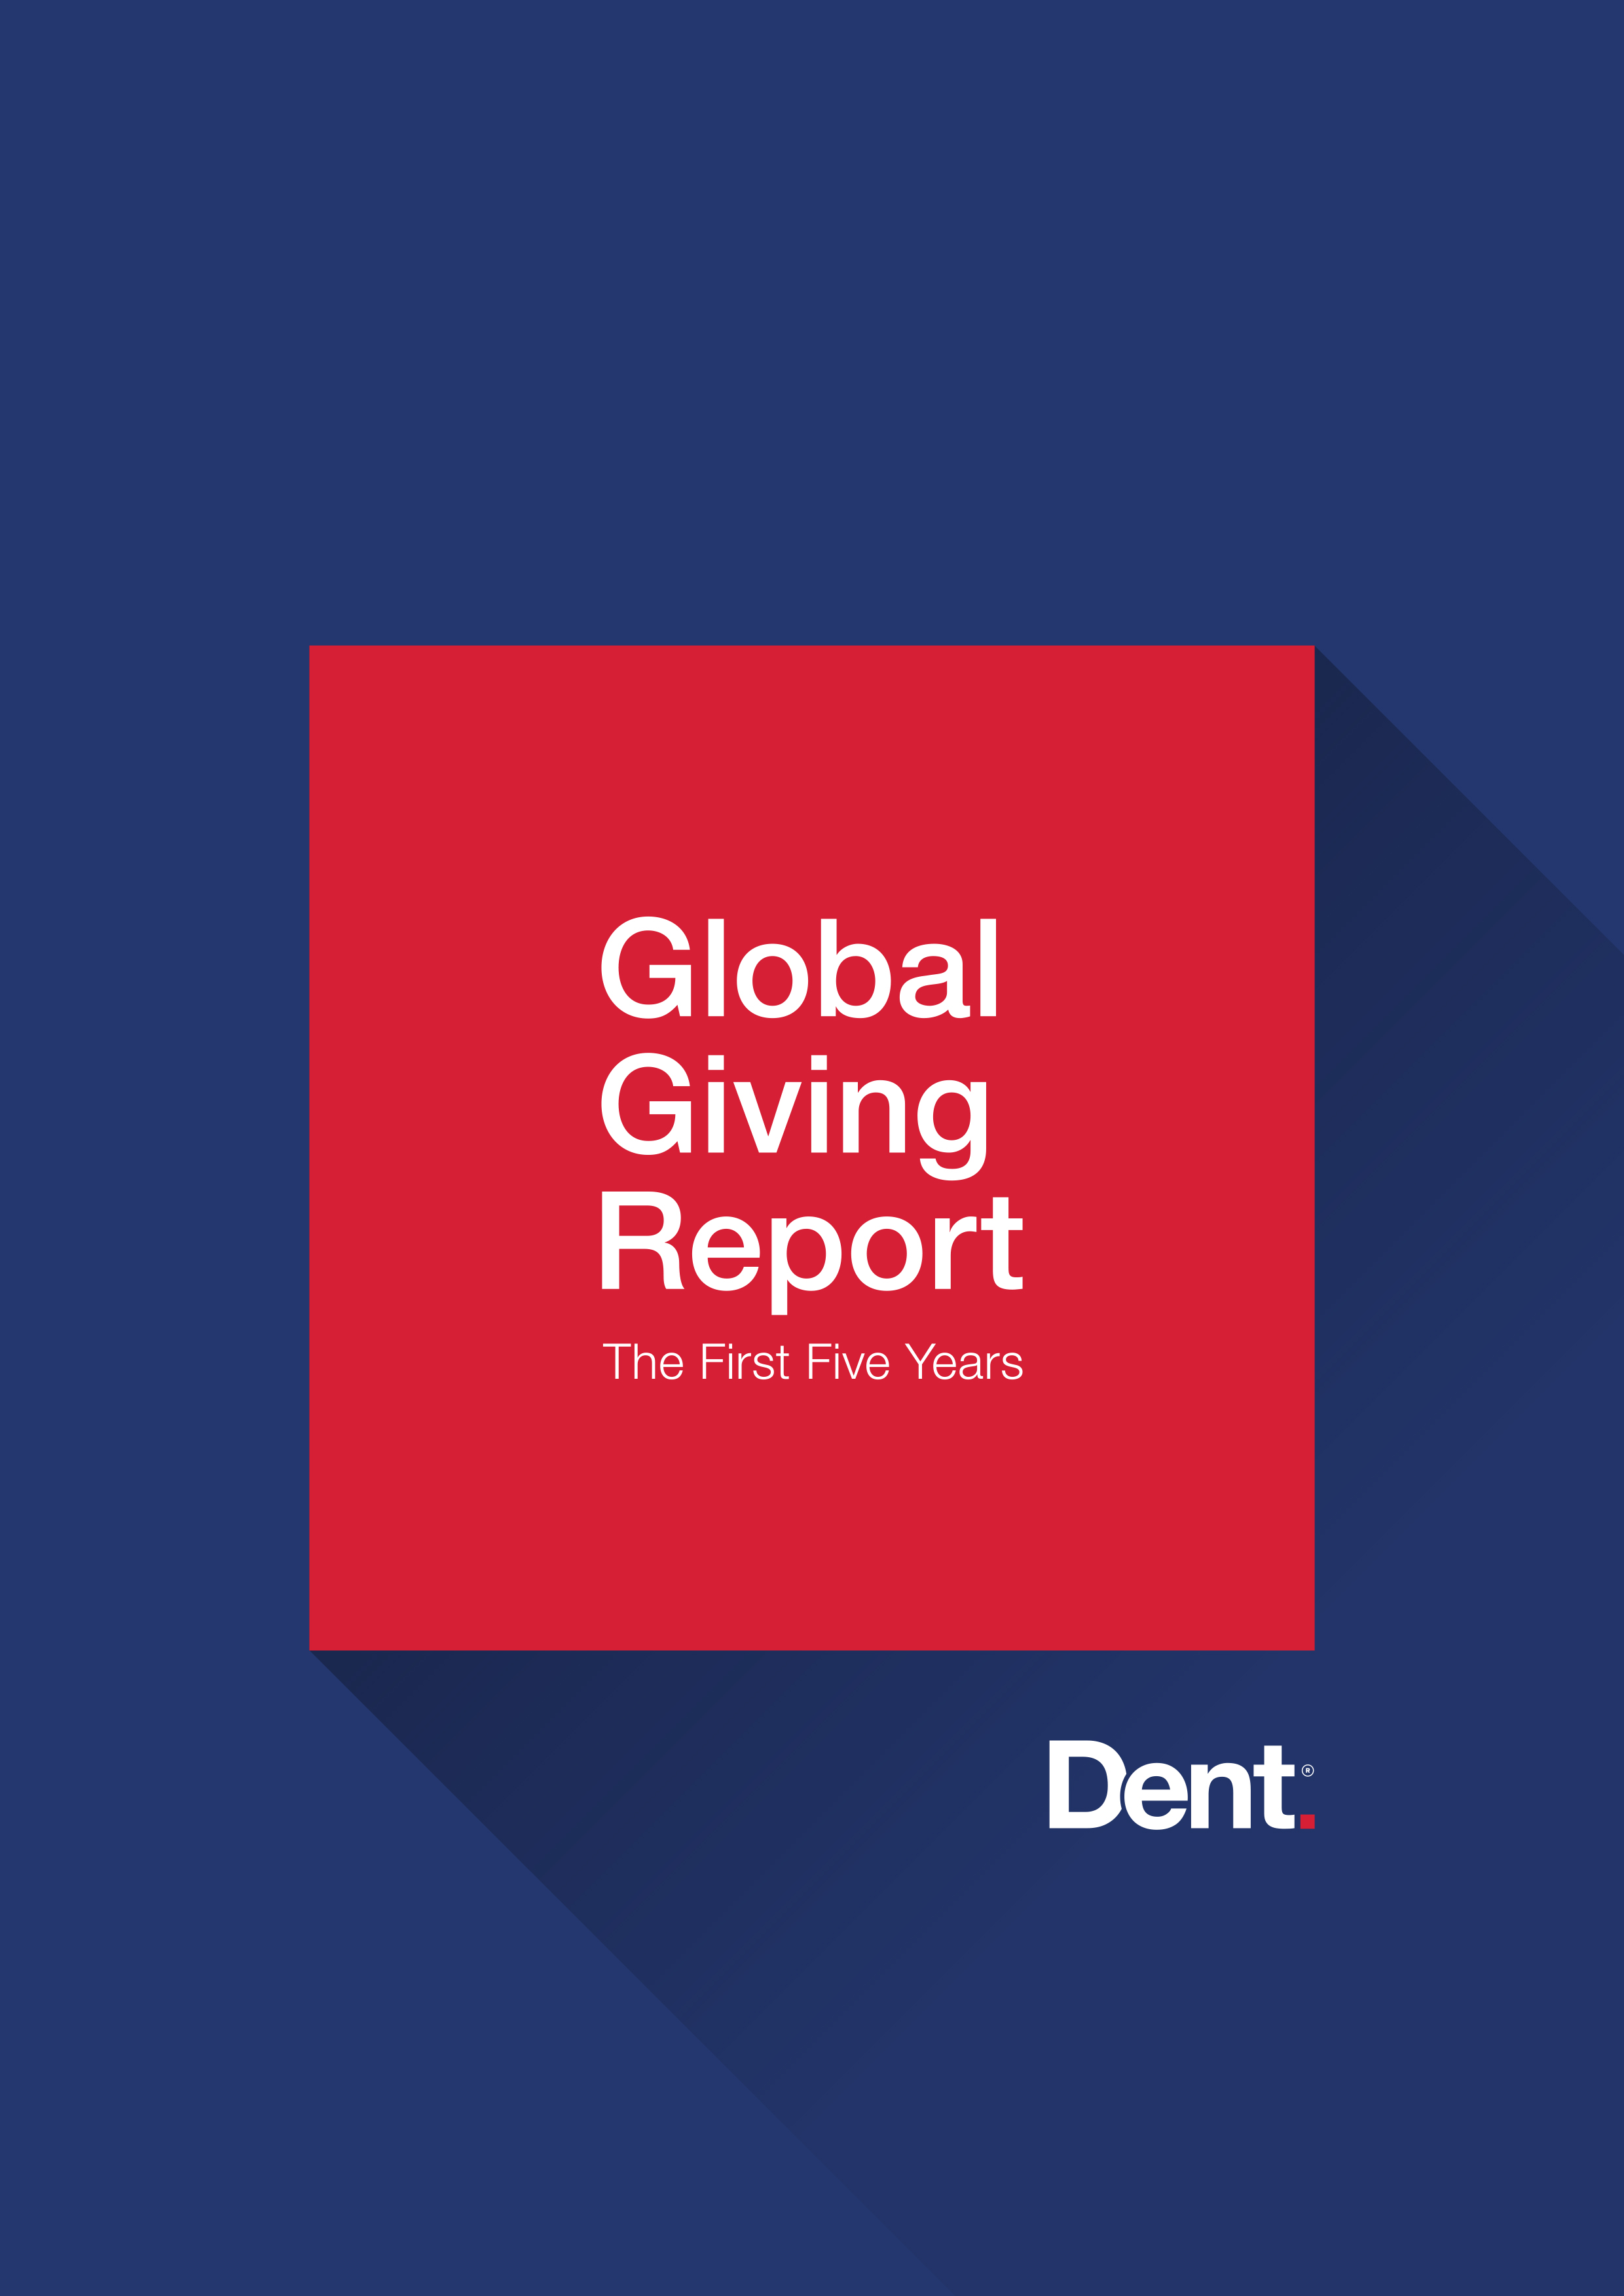 Global Giving Report